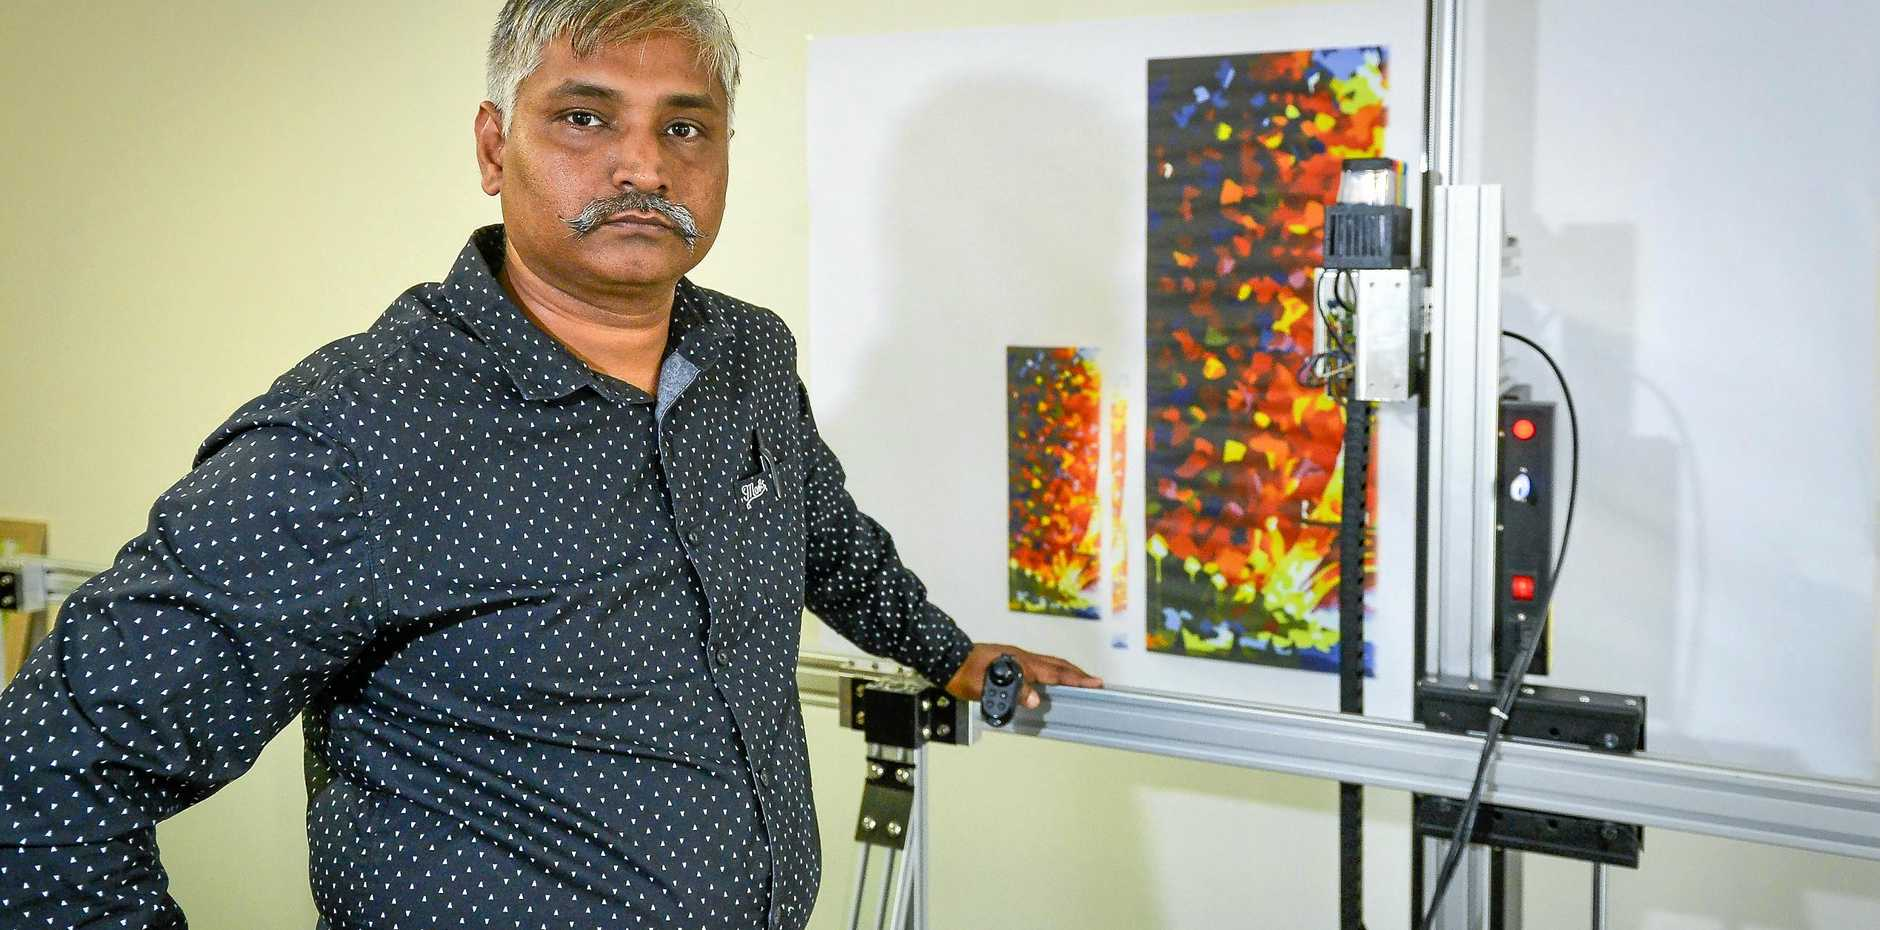 EPIC BUSINESS IDEA: Dinesh Salaria owns Epic Wall Printers, a vertical printing business in Gladstone, and can do innovative designs to suit customers' requirements.